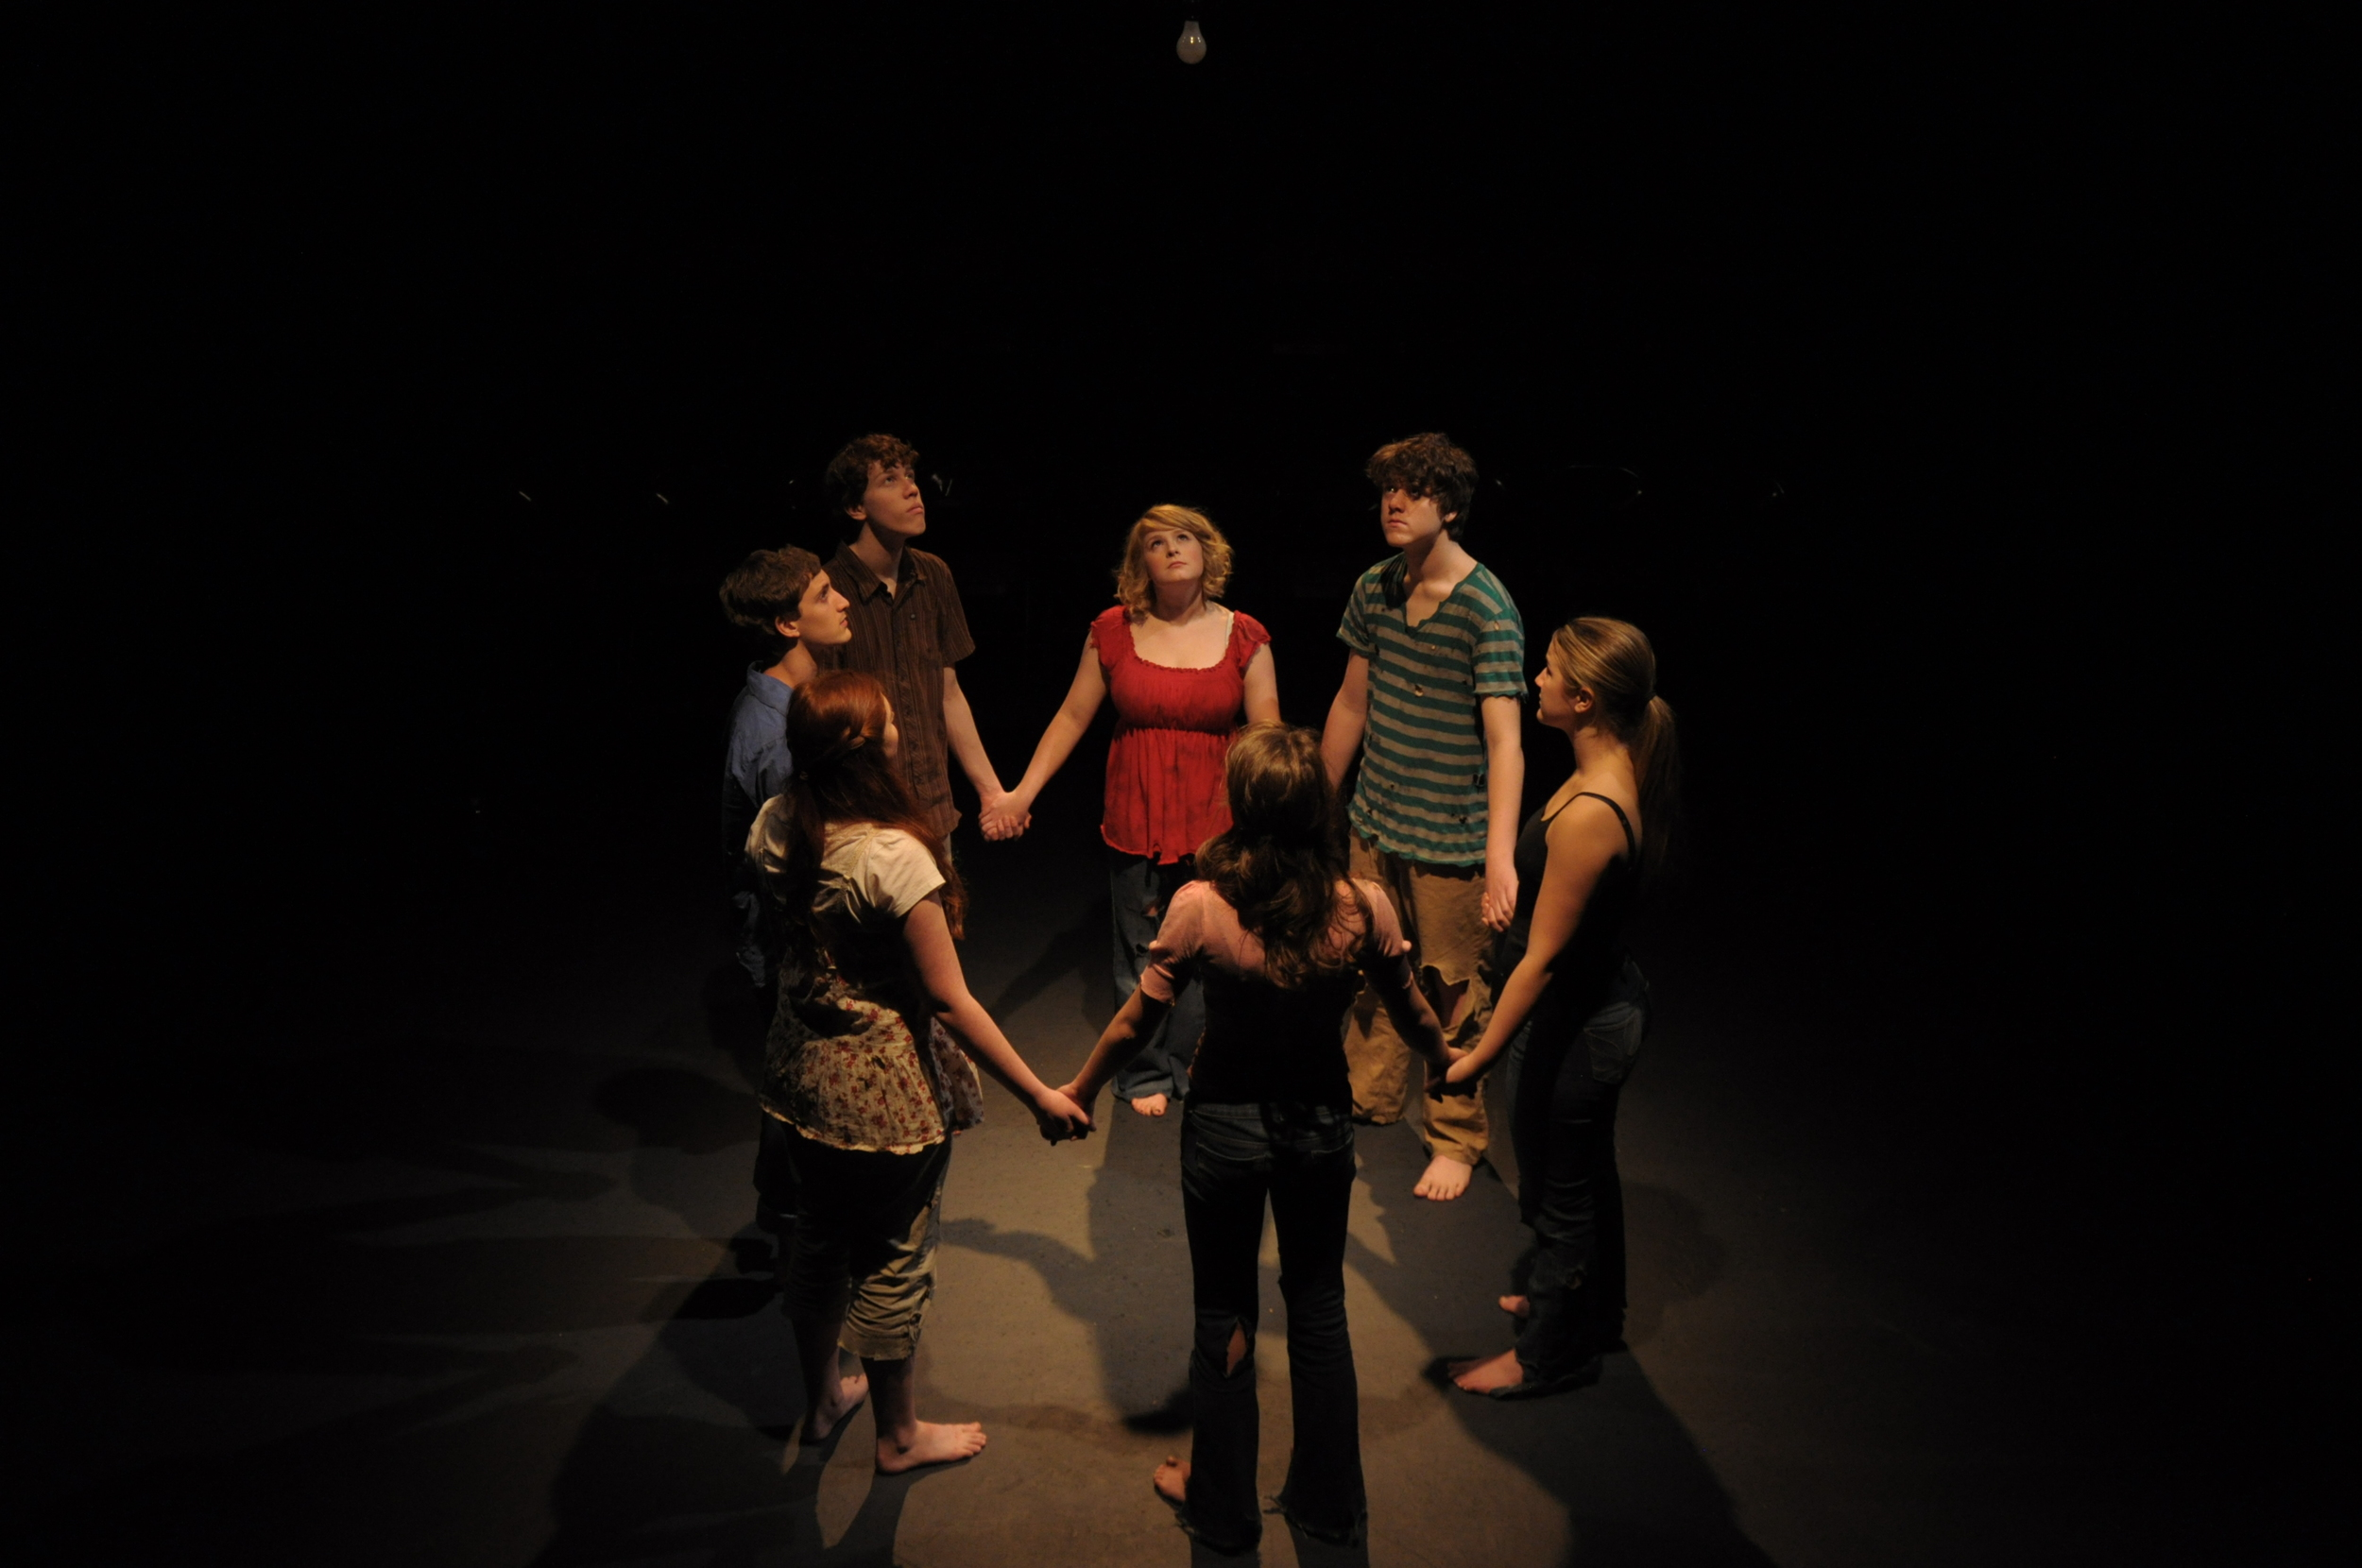 Lindsay Spear as Lissa, Noah Kaufan as Manny, Nathan Palmrose as Chaz, Natalie Lyons as Riley, Ethan Conroy as Saul, Madison Shanley as Tess, and Anna Breuer as Vea in  Alleluia